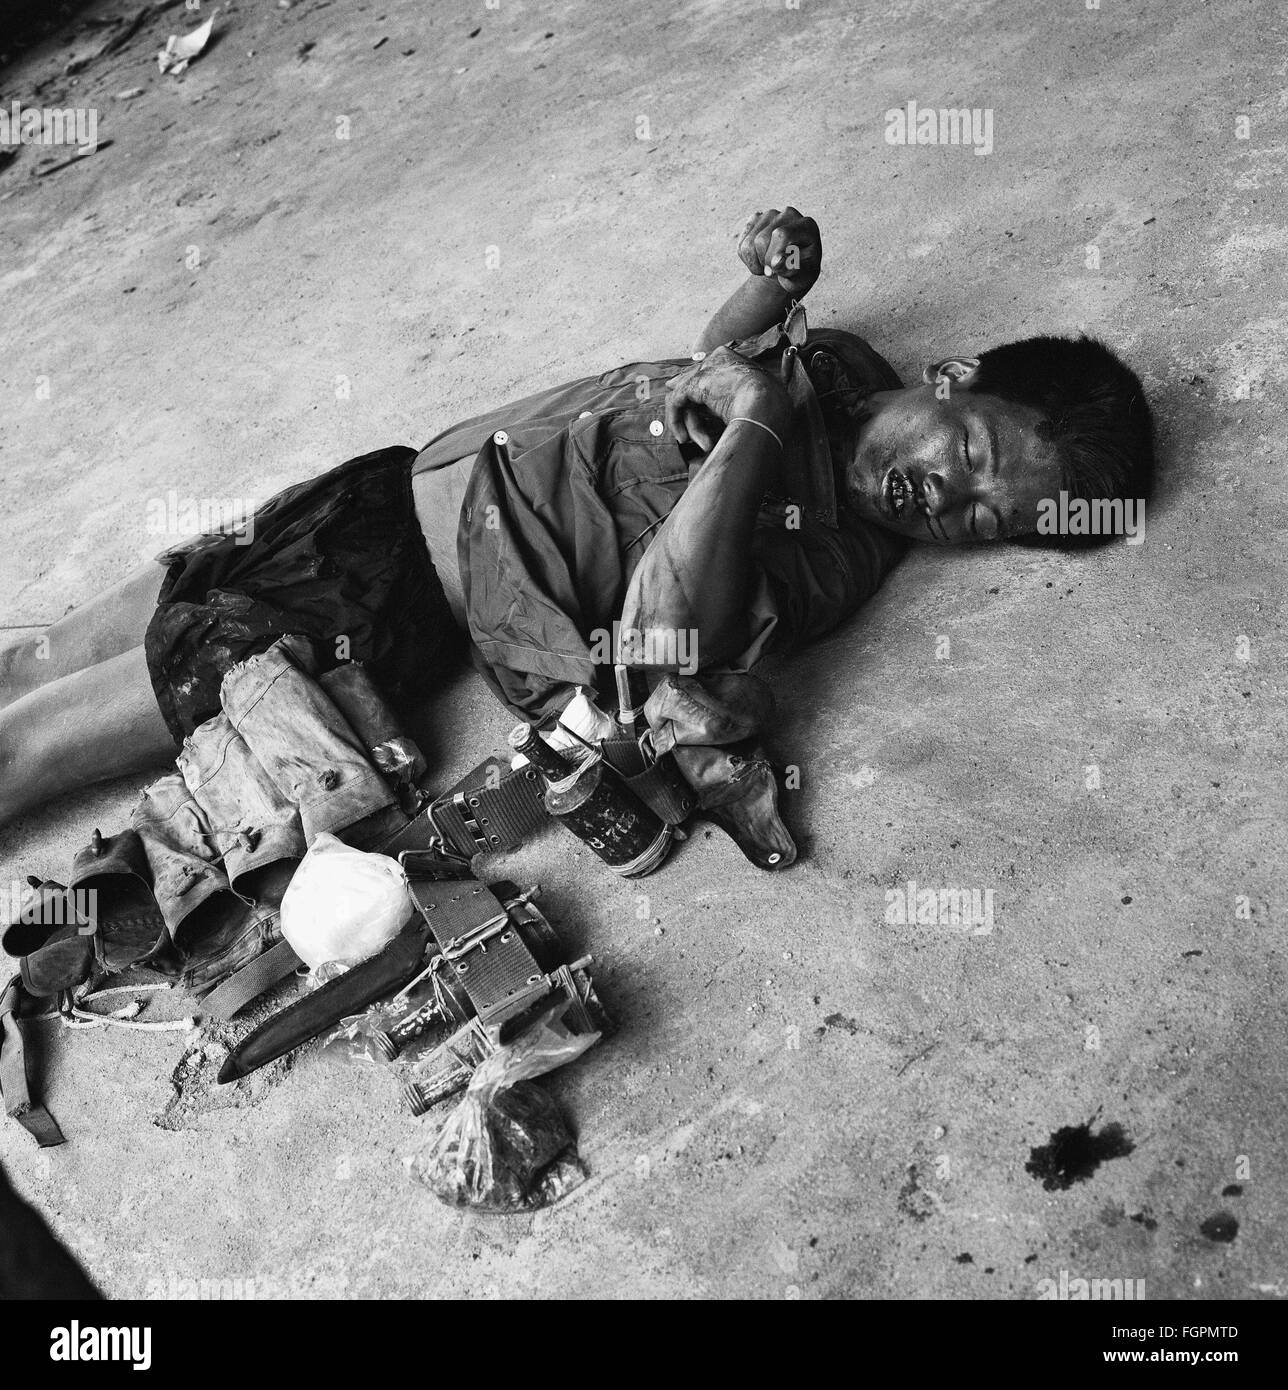 Mud, blood and horror: The brutality of the Vietnam war death pictures